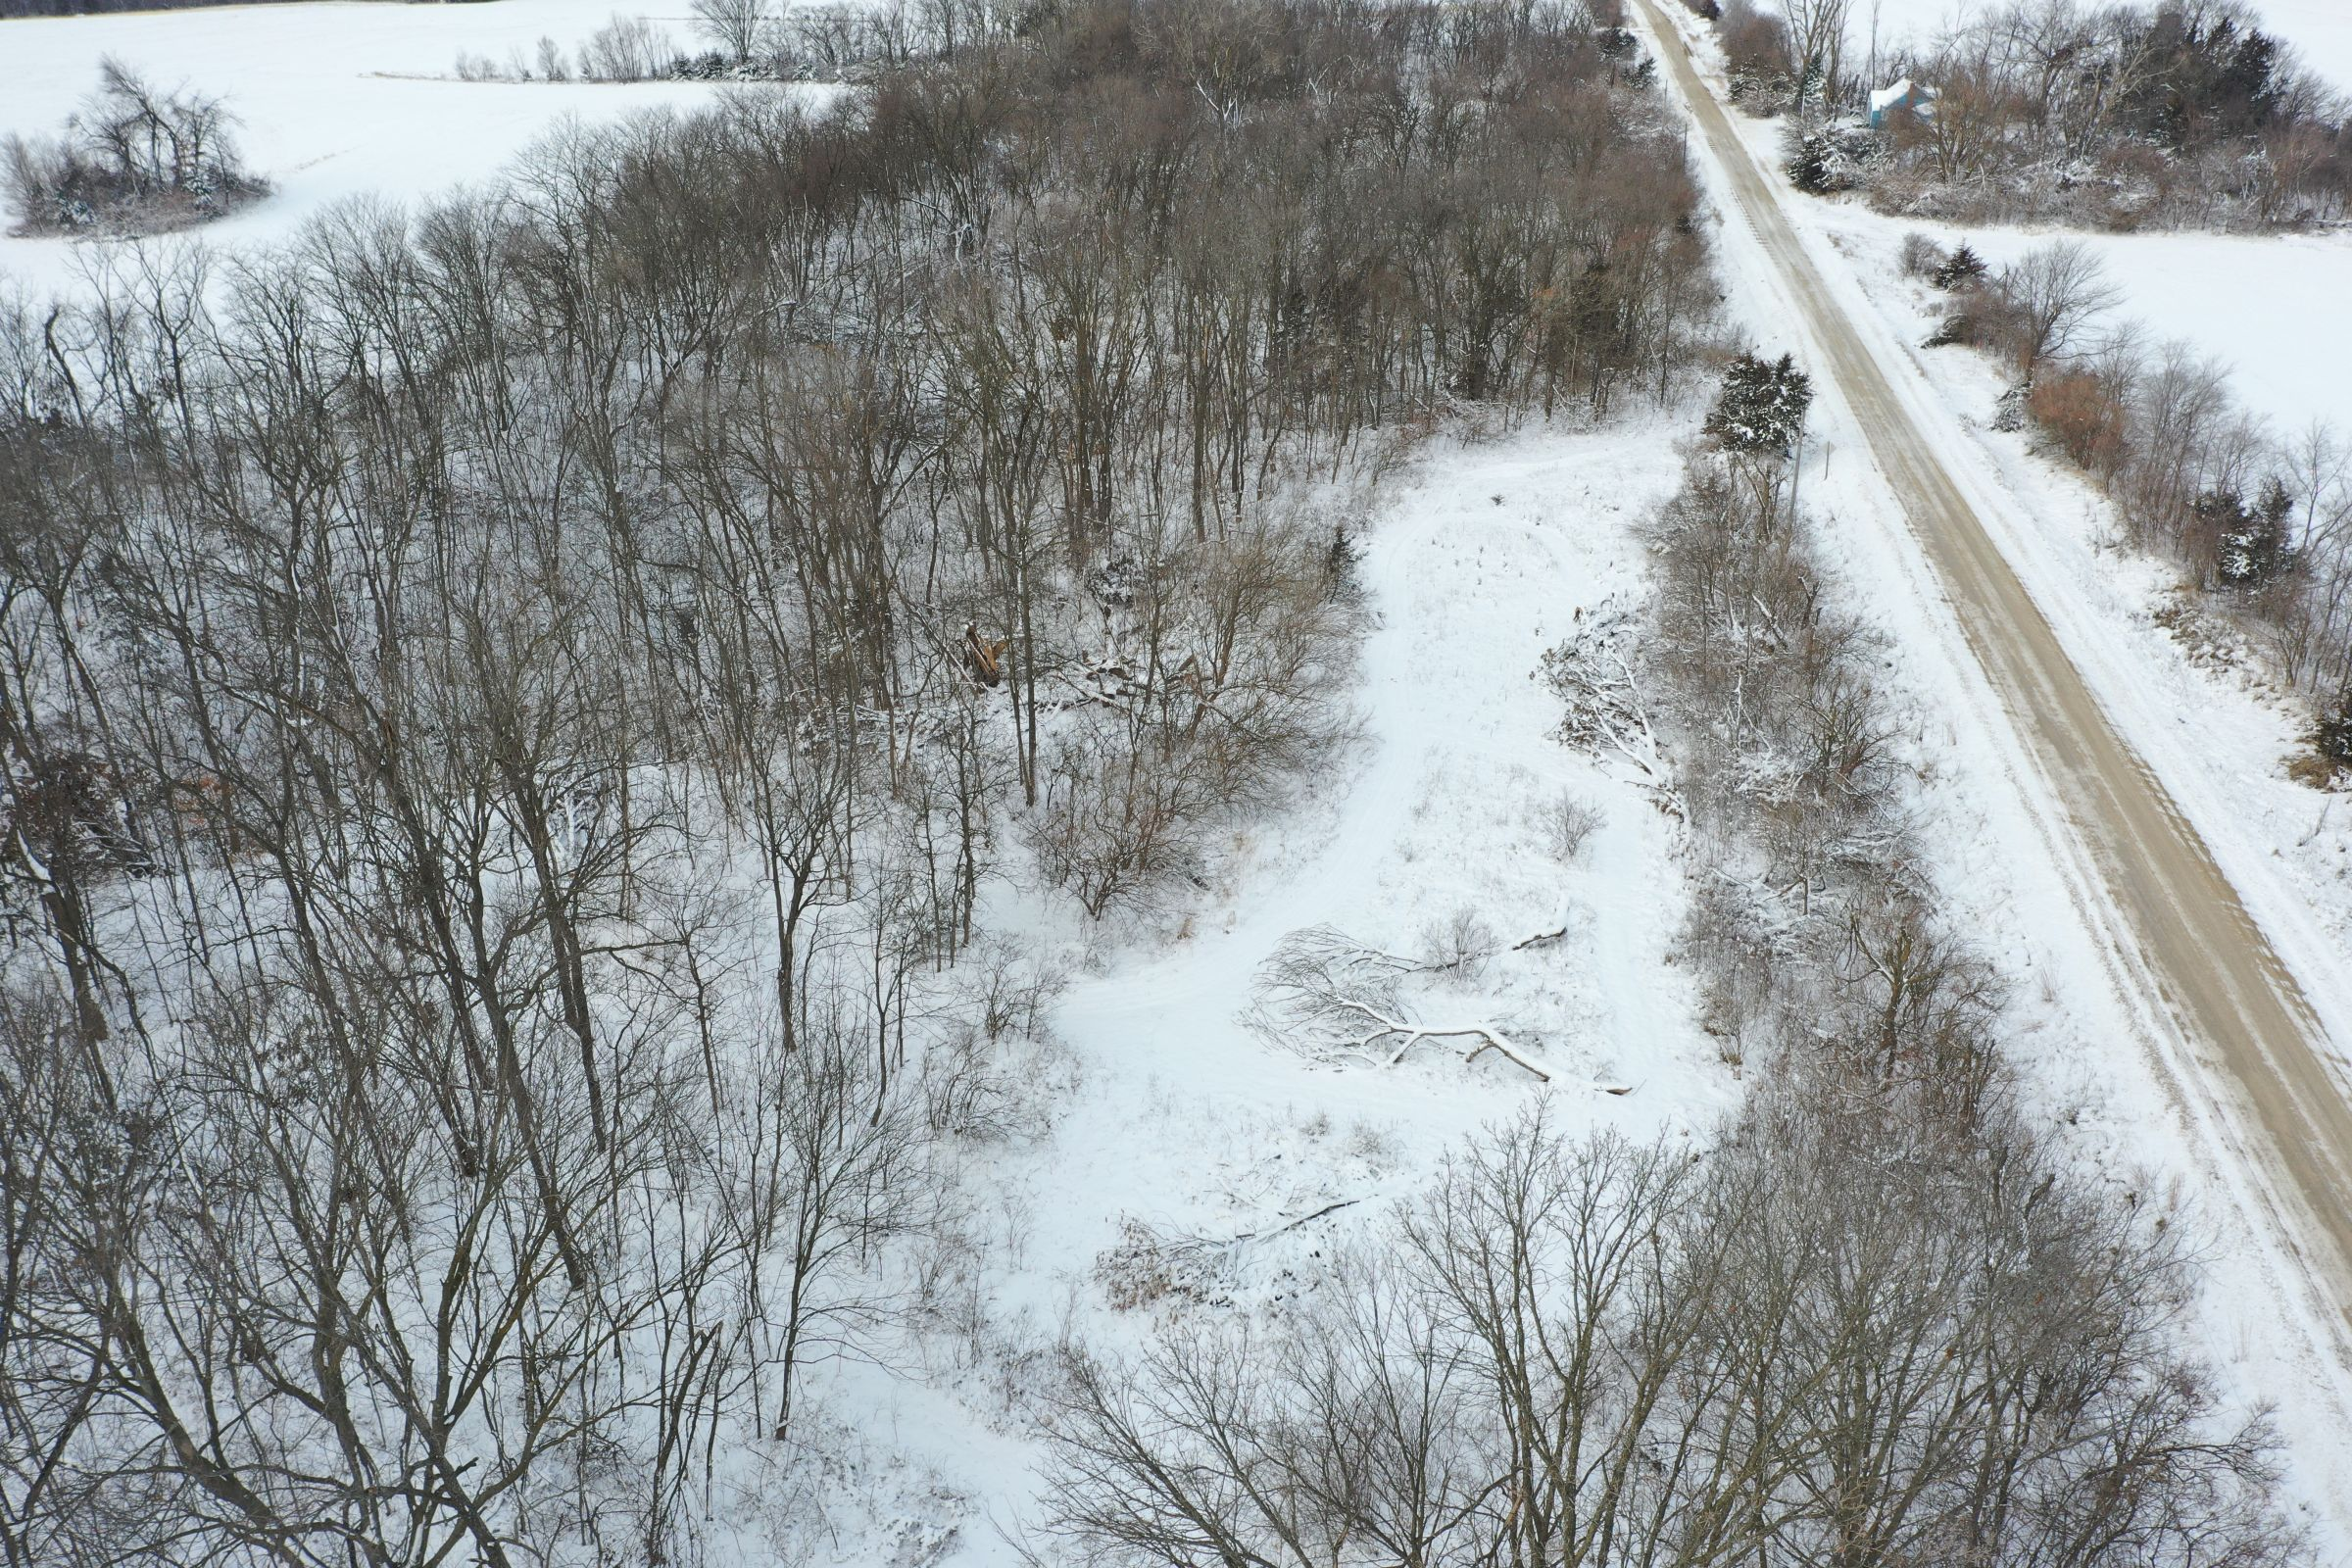 land-dallas-county-iowa-14-acres-listing-number-15298-2-2020-12-15-222745.JPG